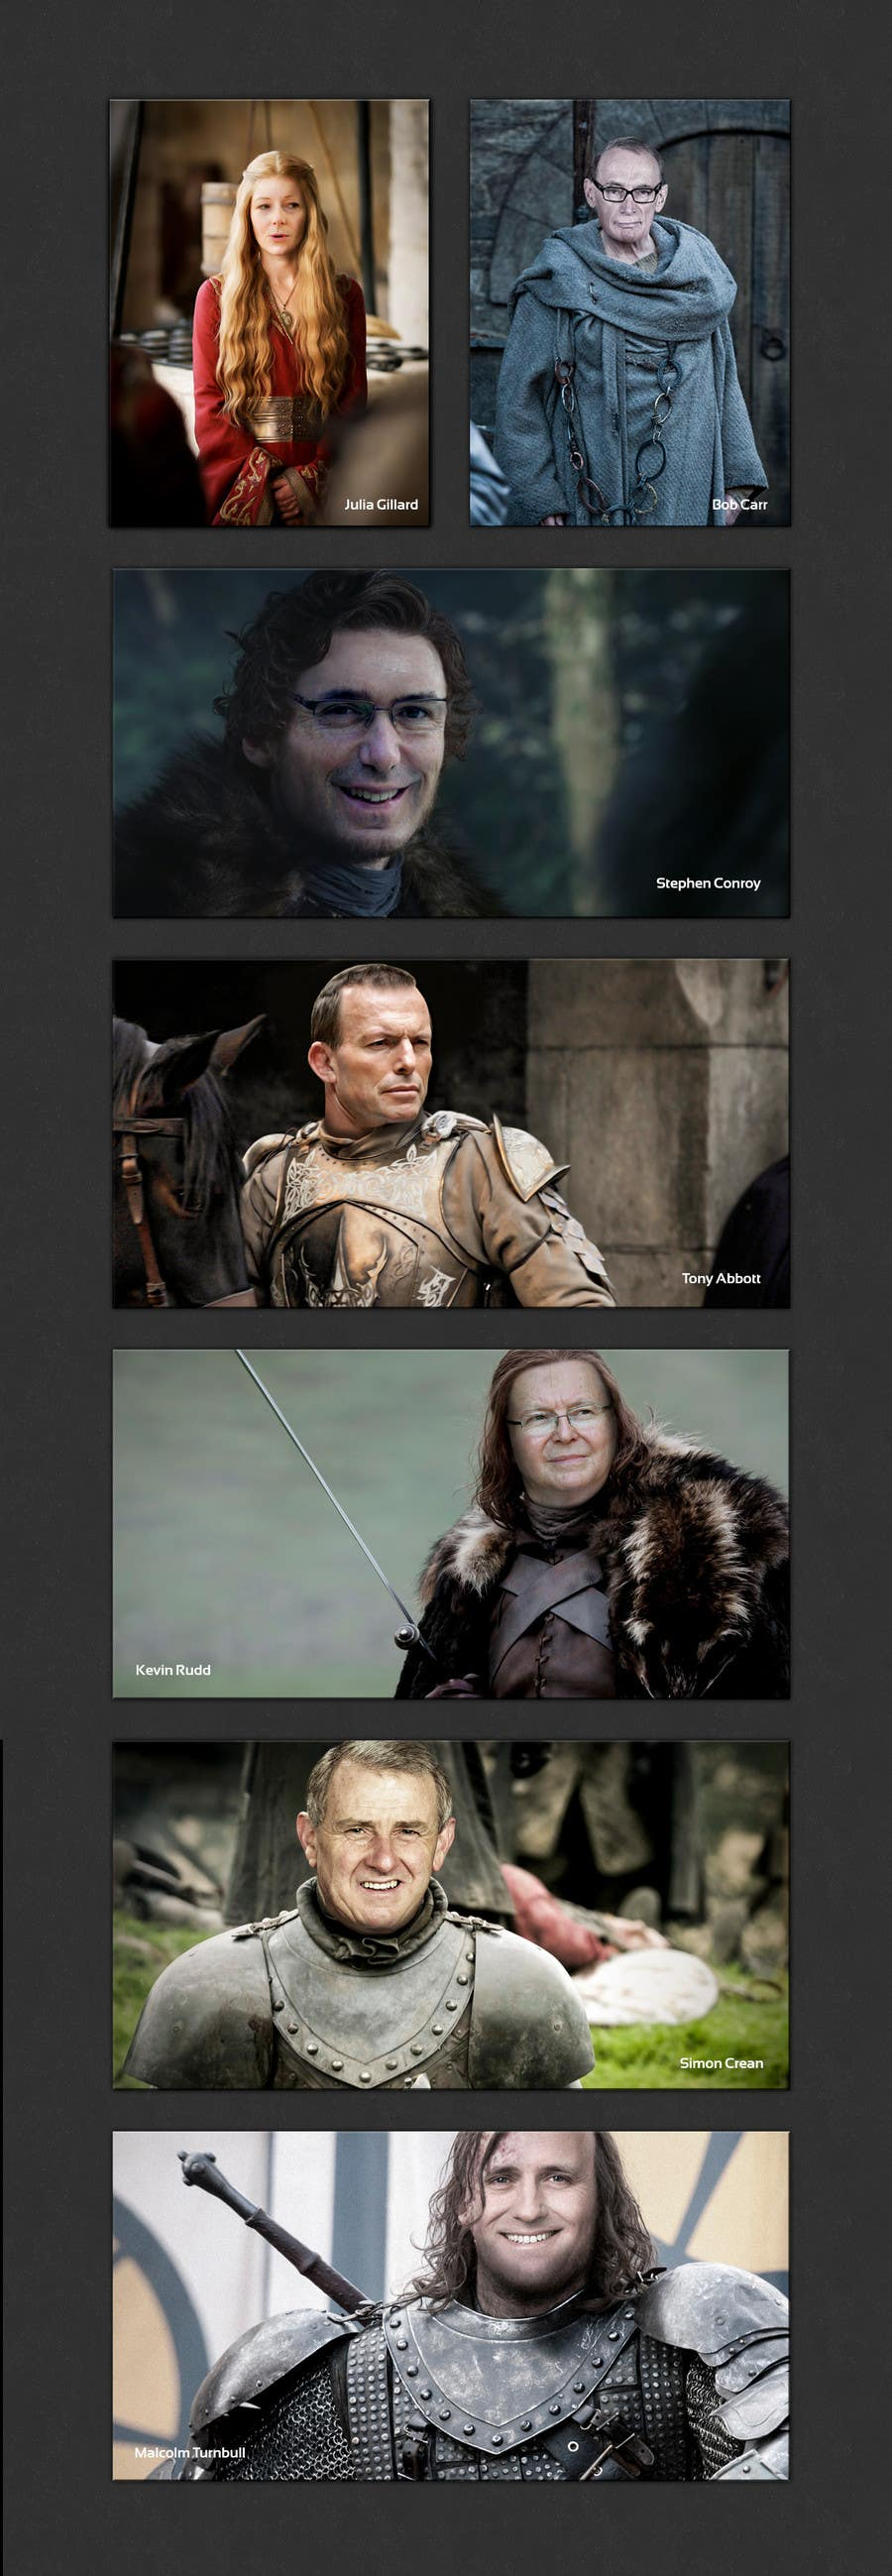 #128 for Photoshop Aussie Politicians into Game of Thrones Mashup by softechnos5